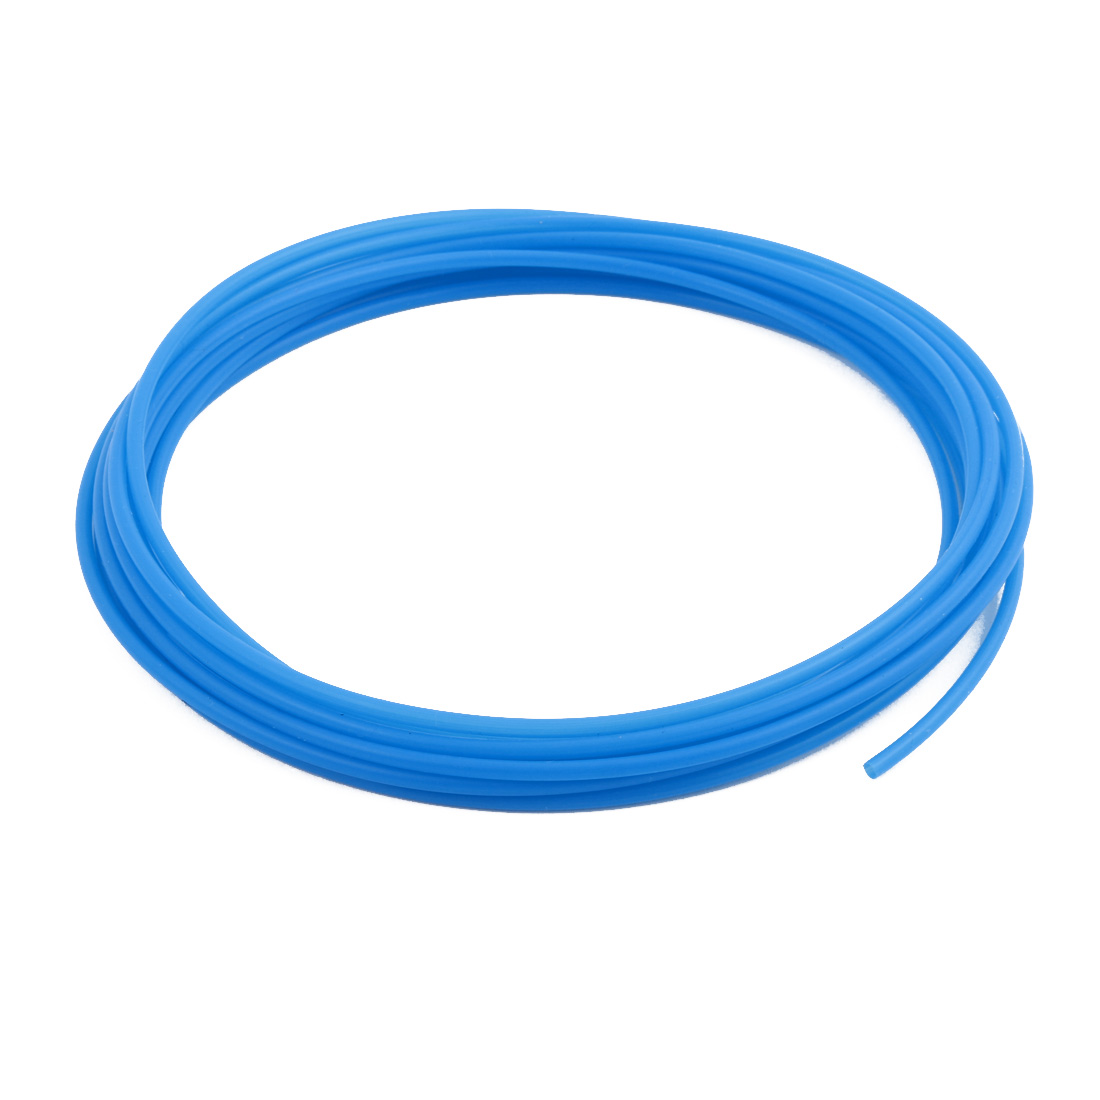 2.69mmx3.09mm PTFE Resistant High Temperature Blue Tubing 5 Meters 16.4Ft